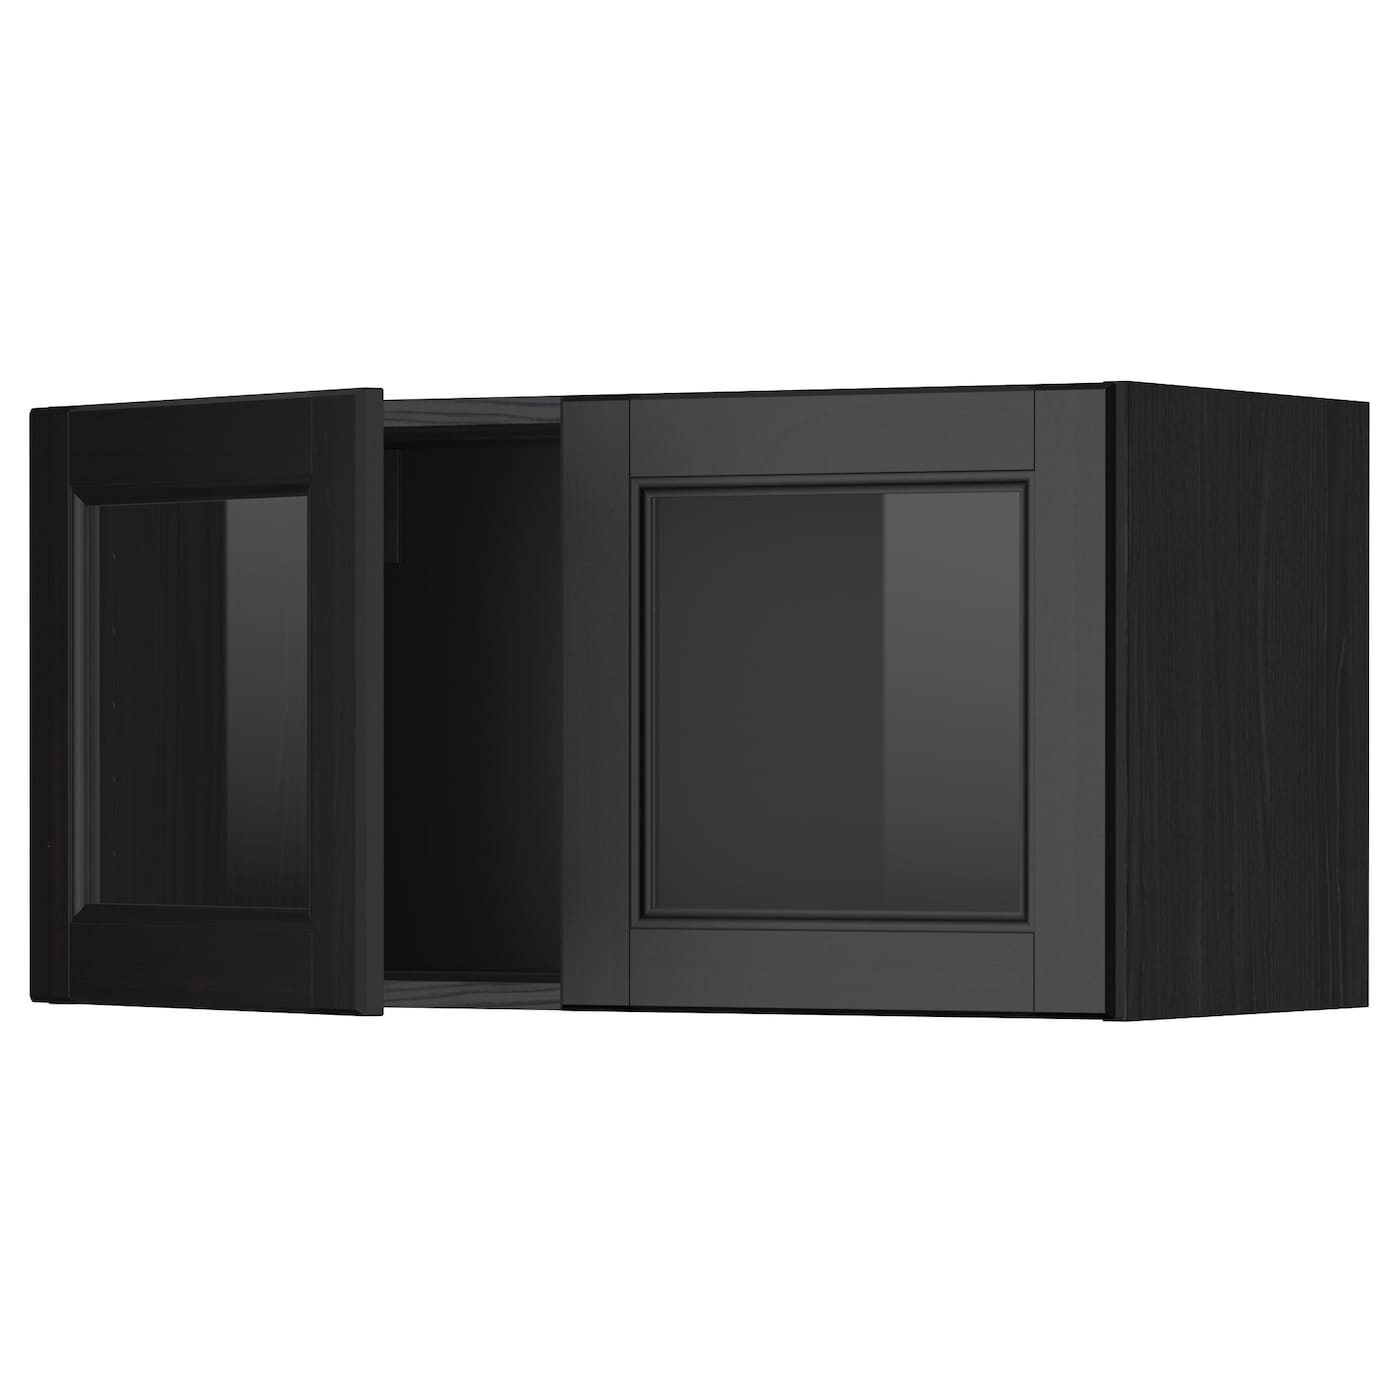 Metod wall cabinet with 2 glass doors black laxarby black for Black cabinet with doors